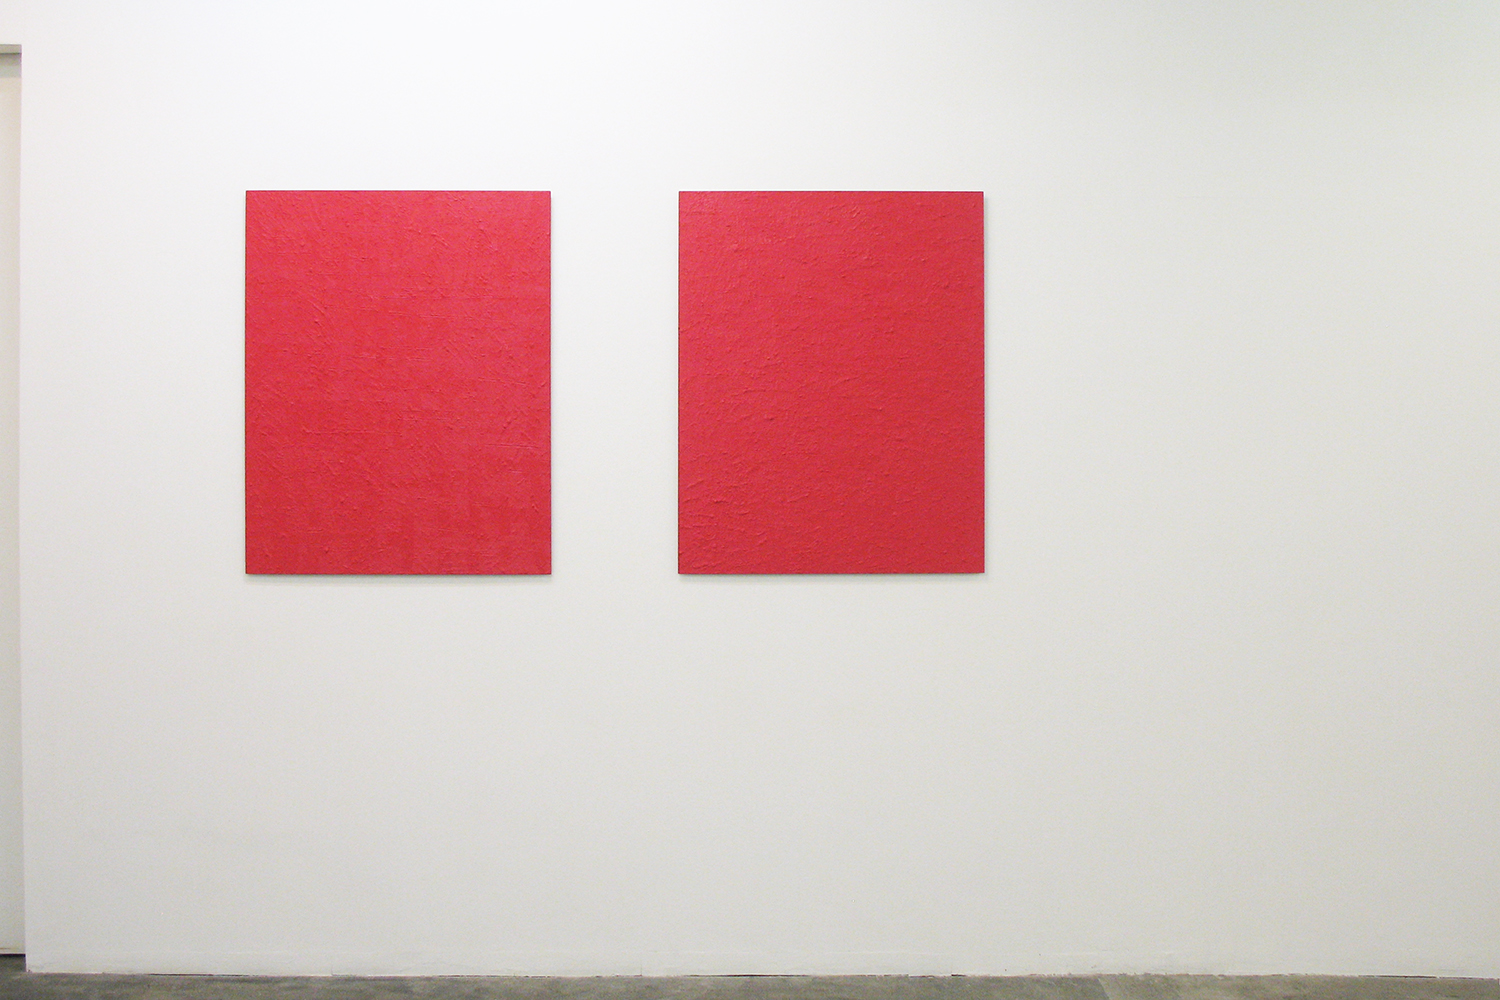 Untitled - Deep Red (right 2 pieces)|Oil on aluminum|910 x 727 mm|2012 each